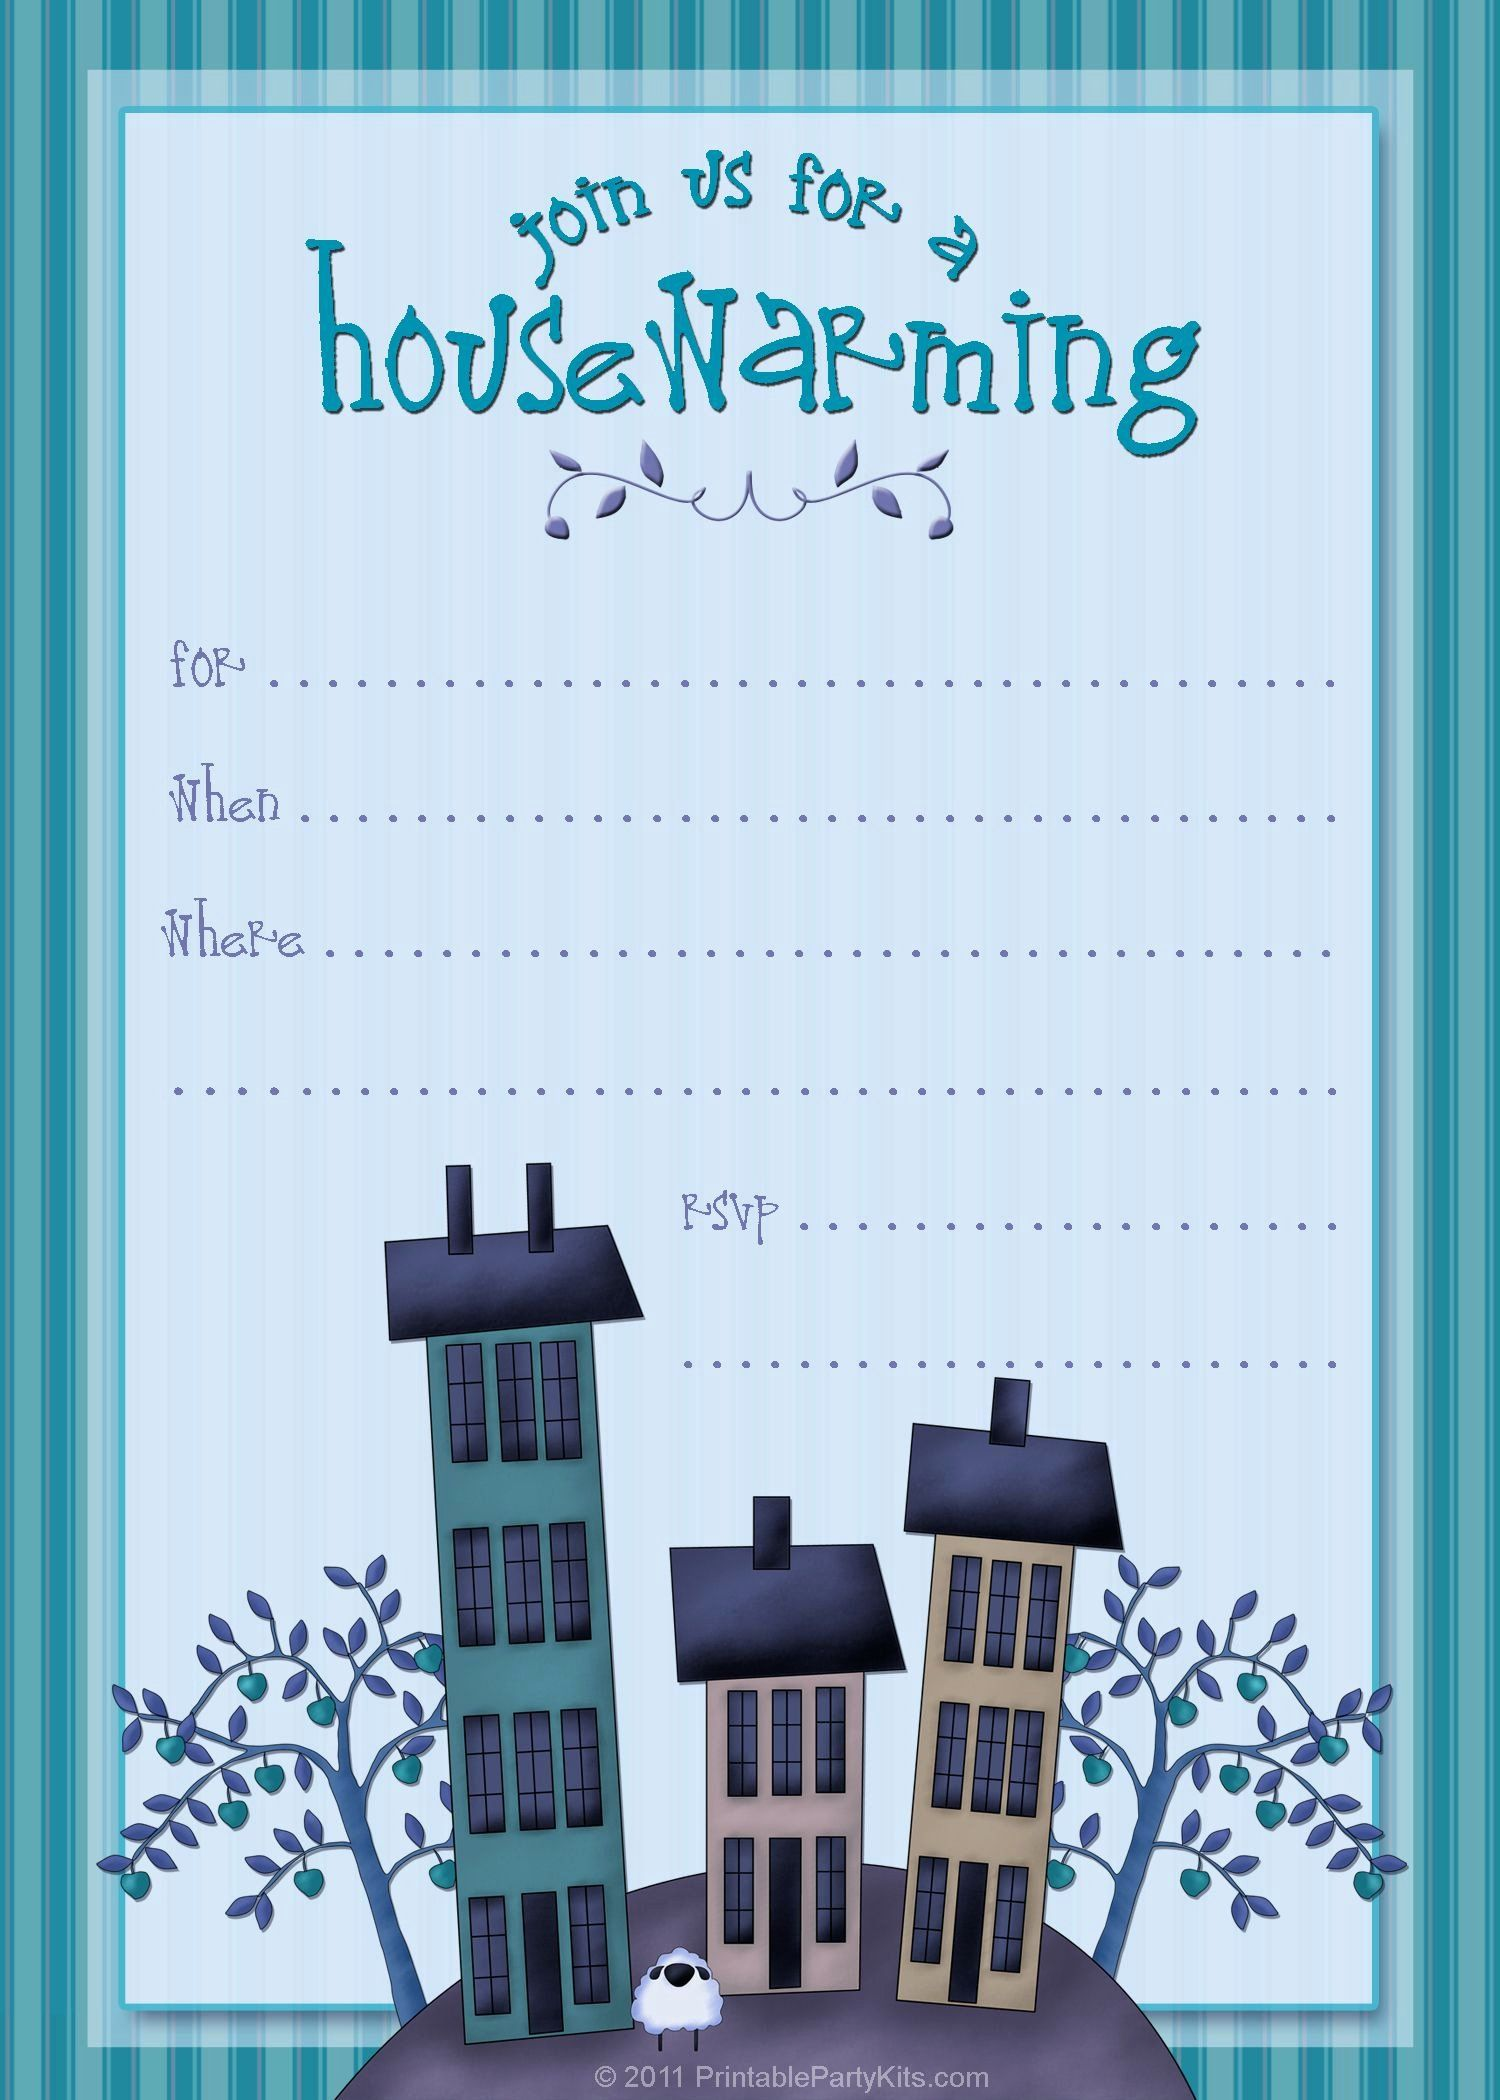 Awesome House Warming Party Invitation Template Housewarming